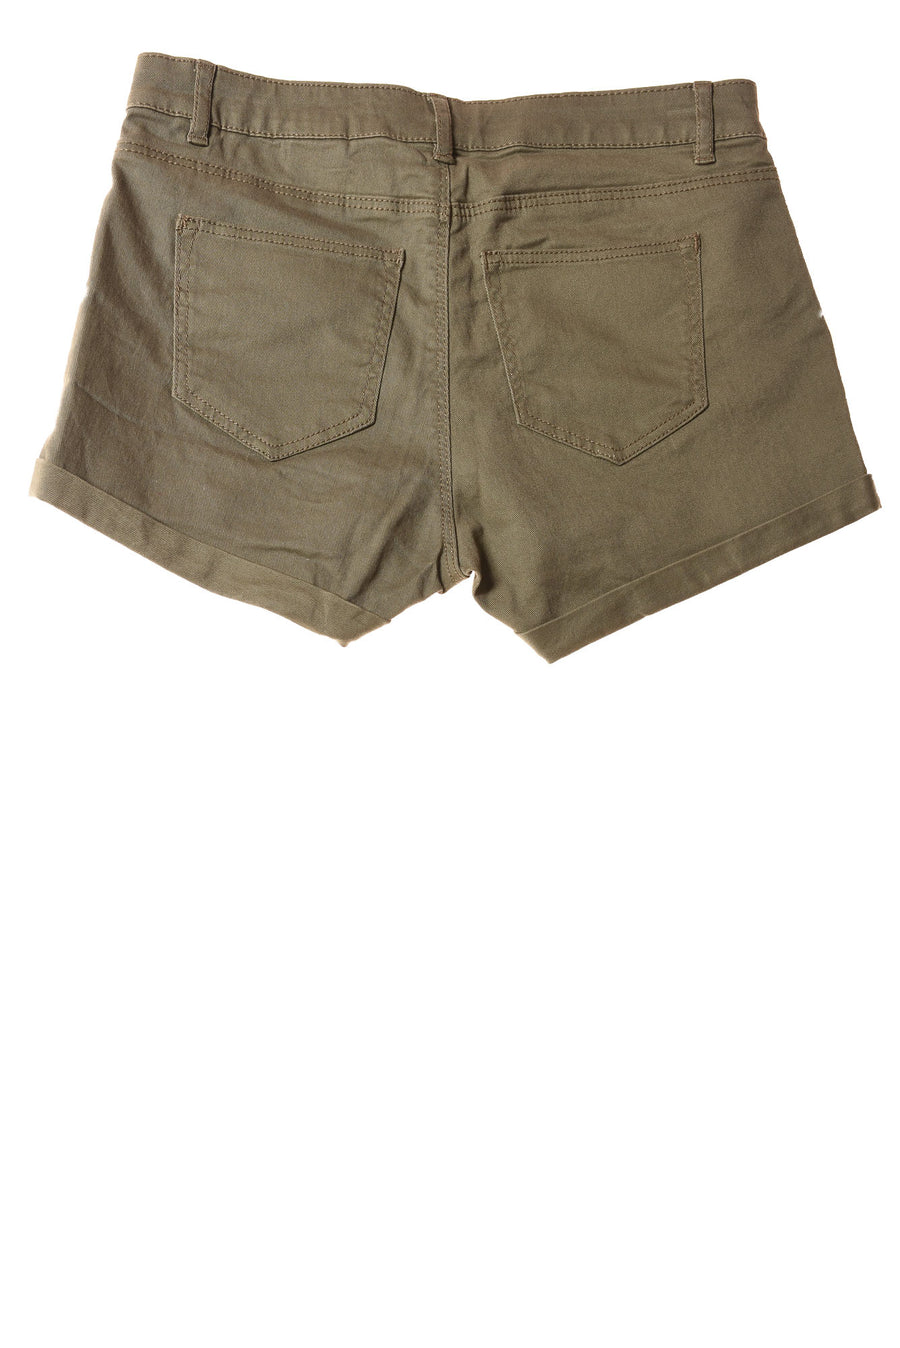 USED H&M Women's Shorts 4 Olive Green